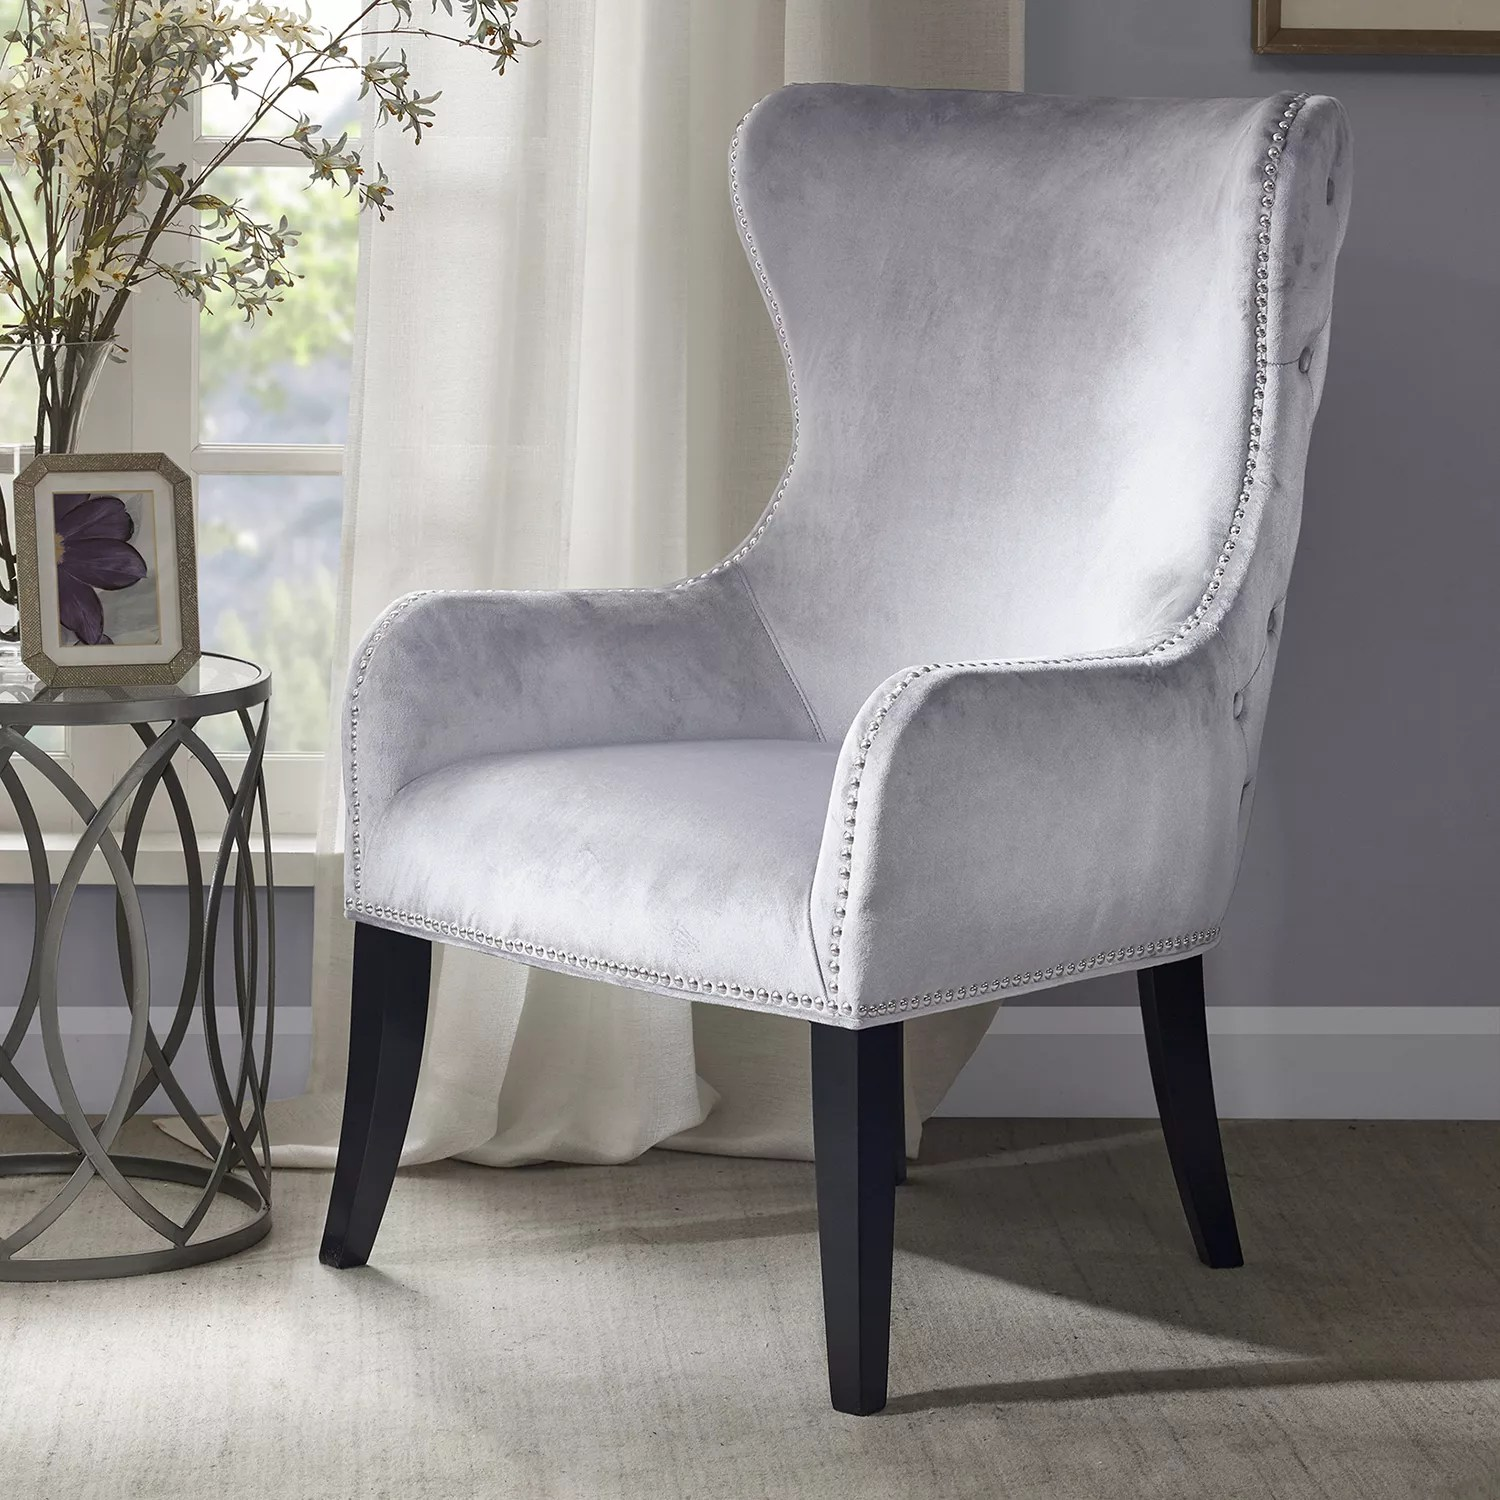 Tufted High Back Chair Madison Park Tufted High Back Accent Chair